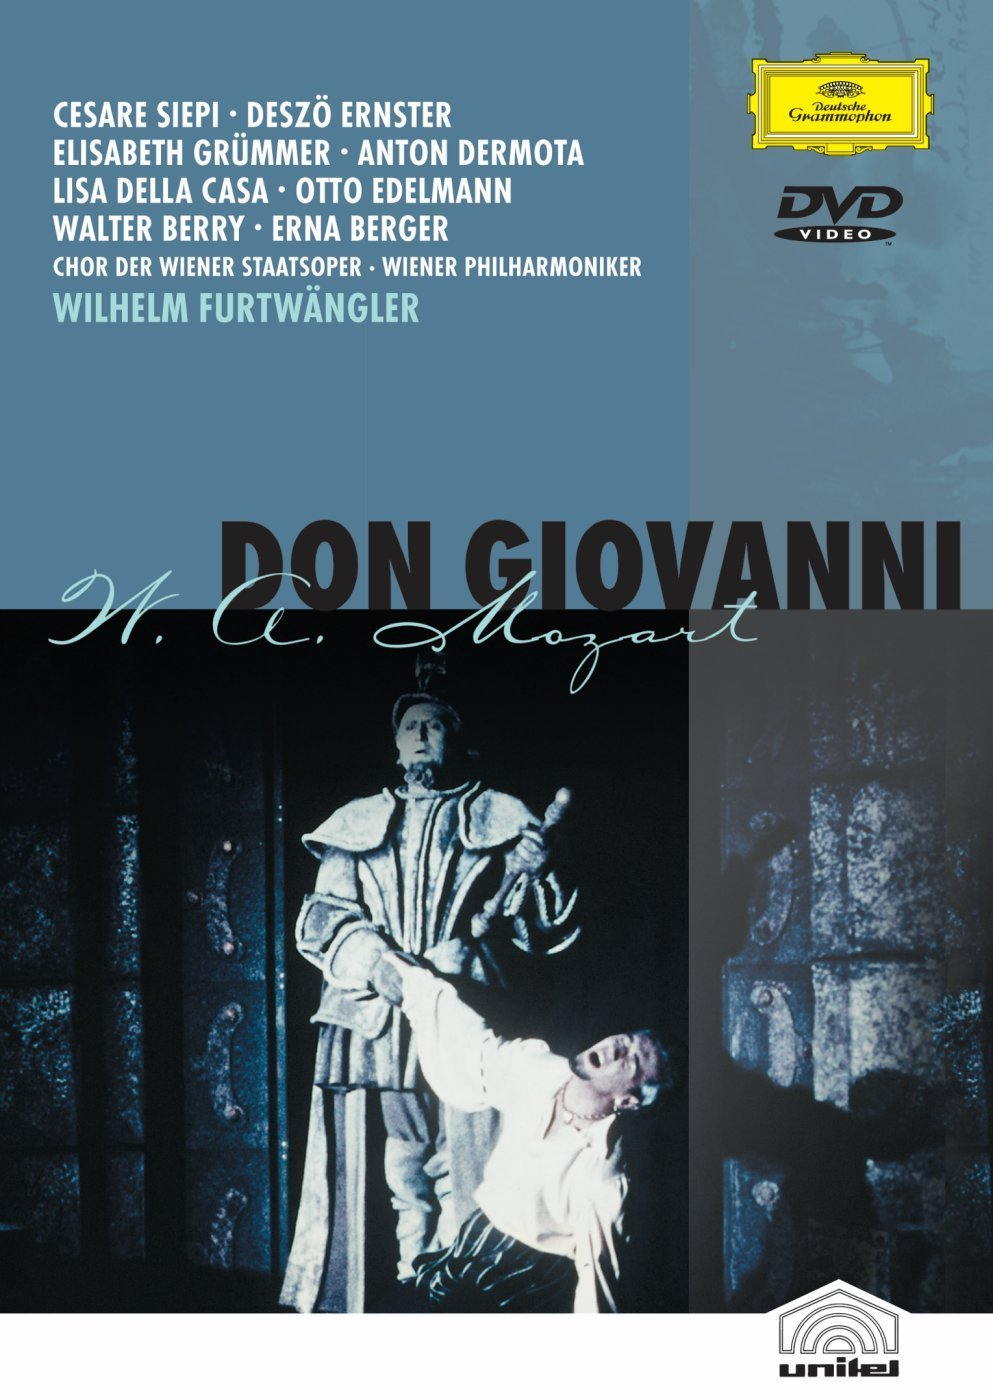 Amazon.com: Mozart - Don Giovanni / Furtwangler: Wilhelm Furtwängler ...